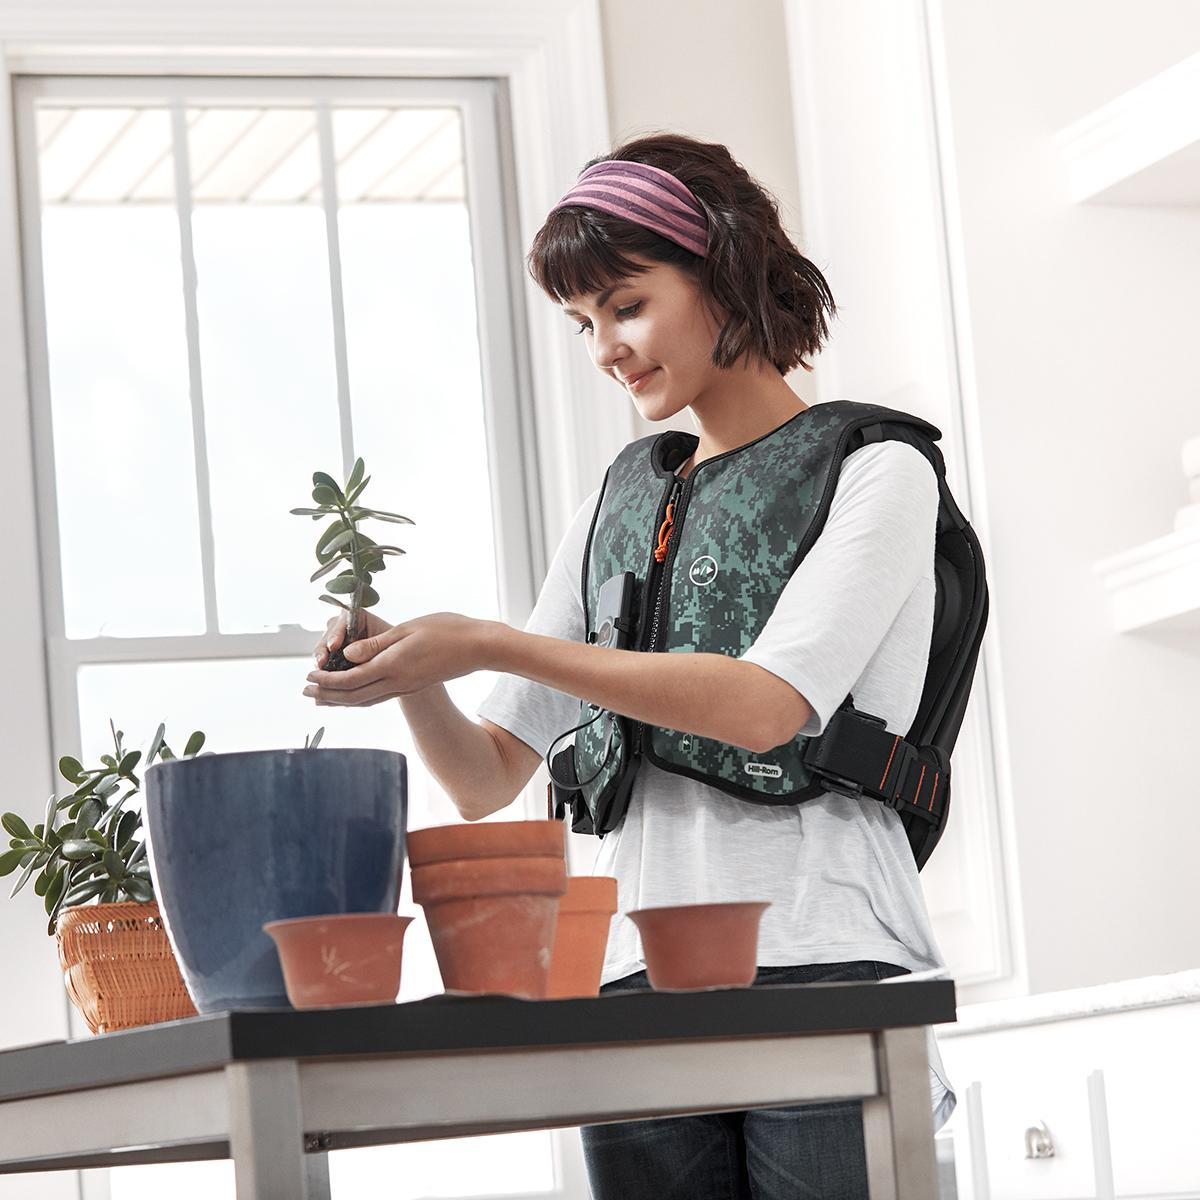 A smiling young woman with black hair, wearing a colorful Monarch® System vest and purple headband, pots plants in her living room.